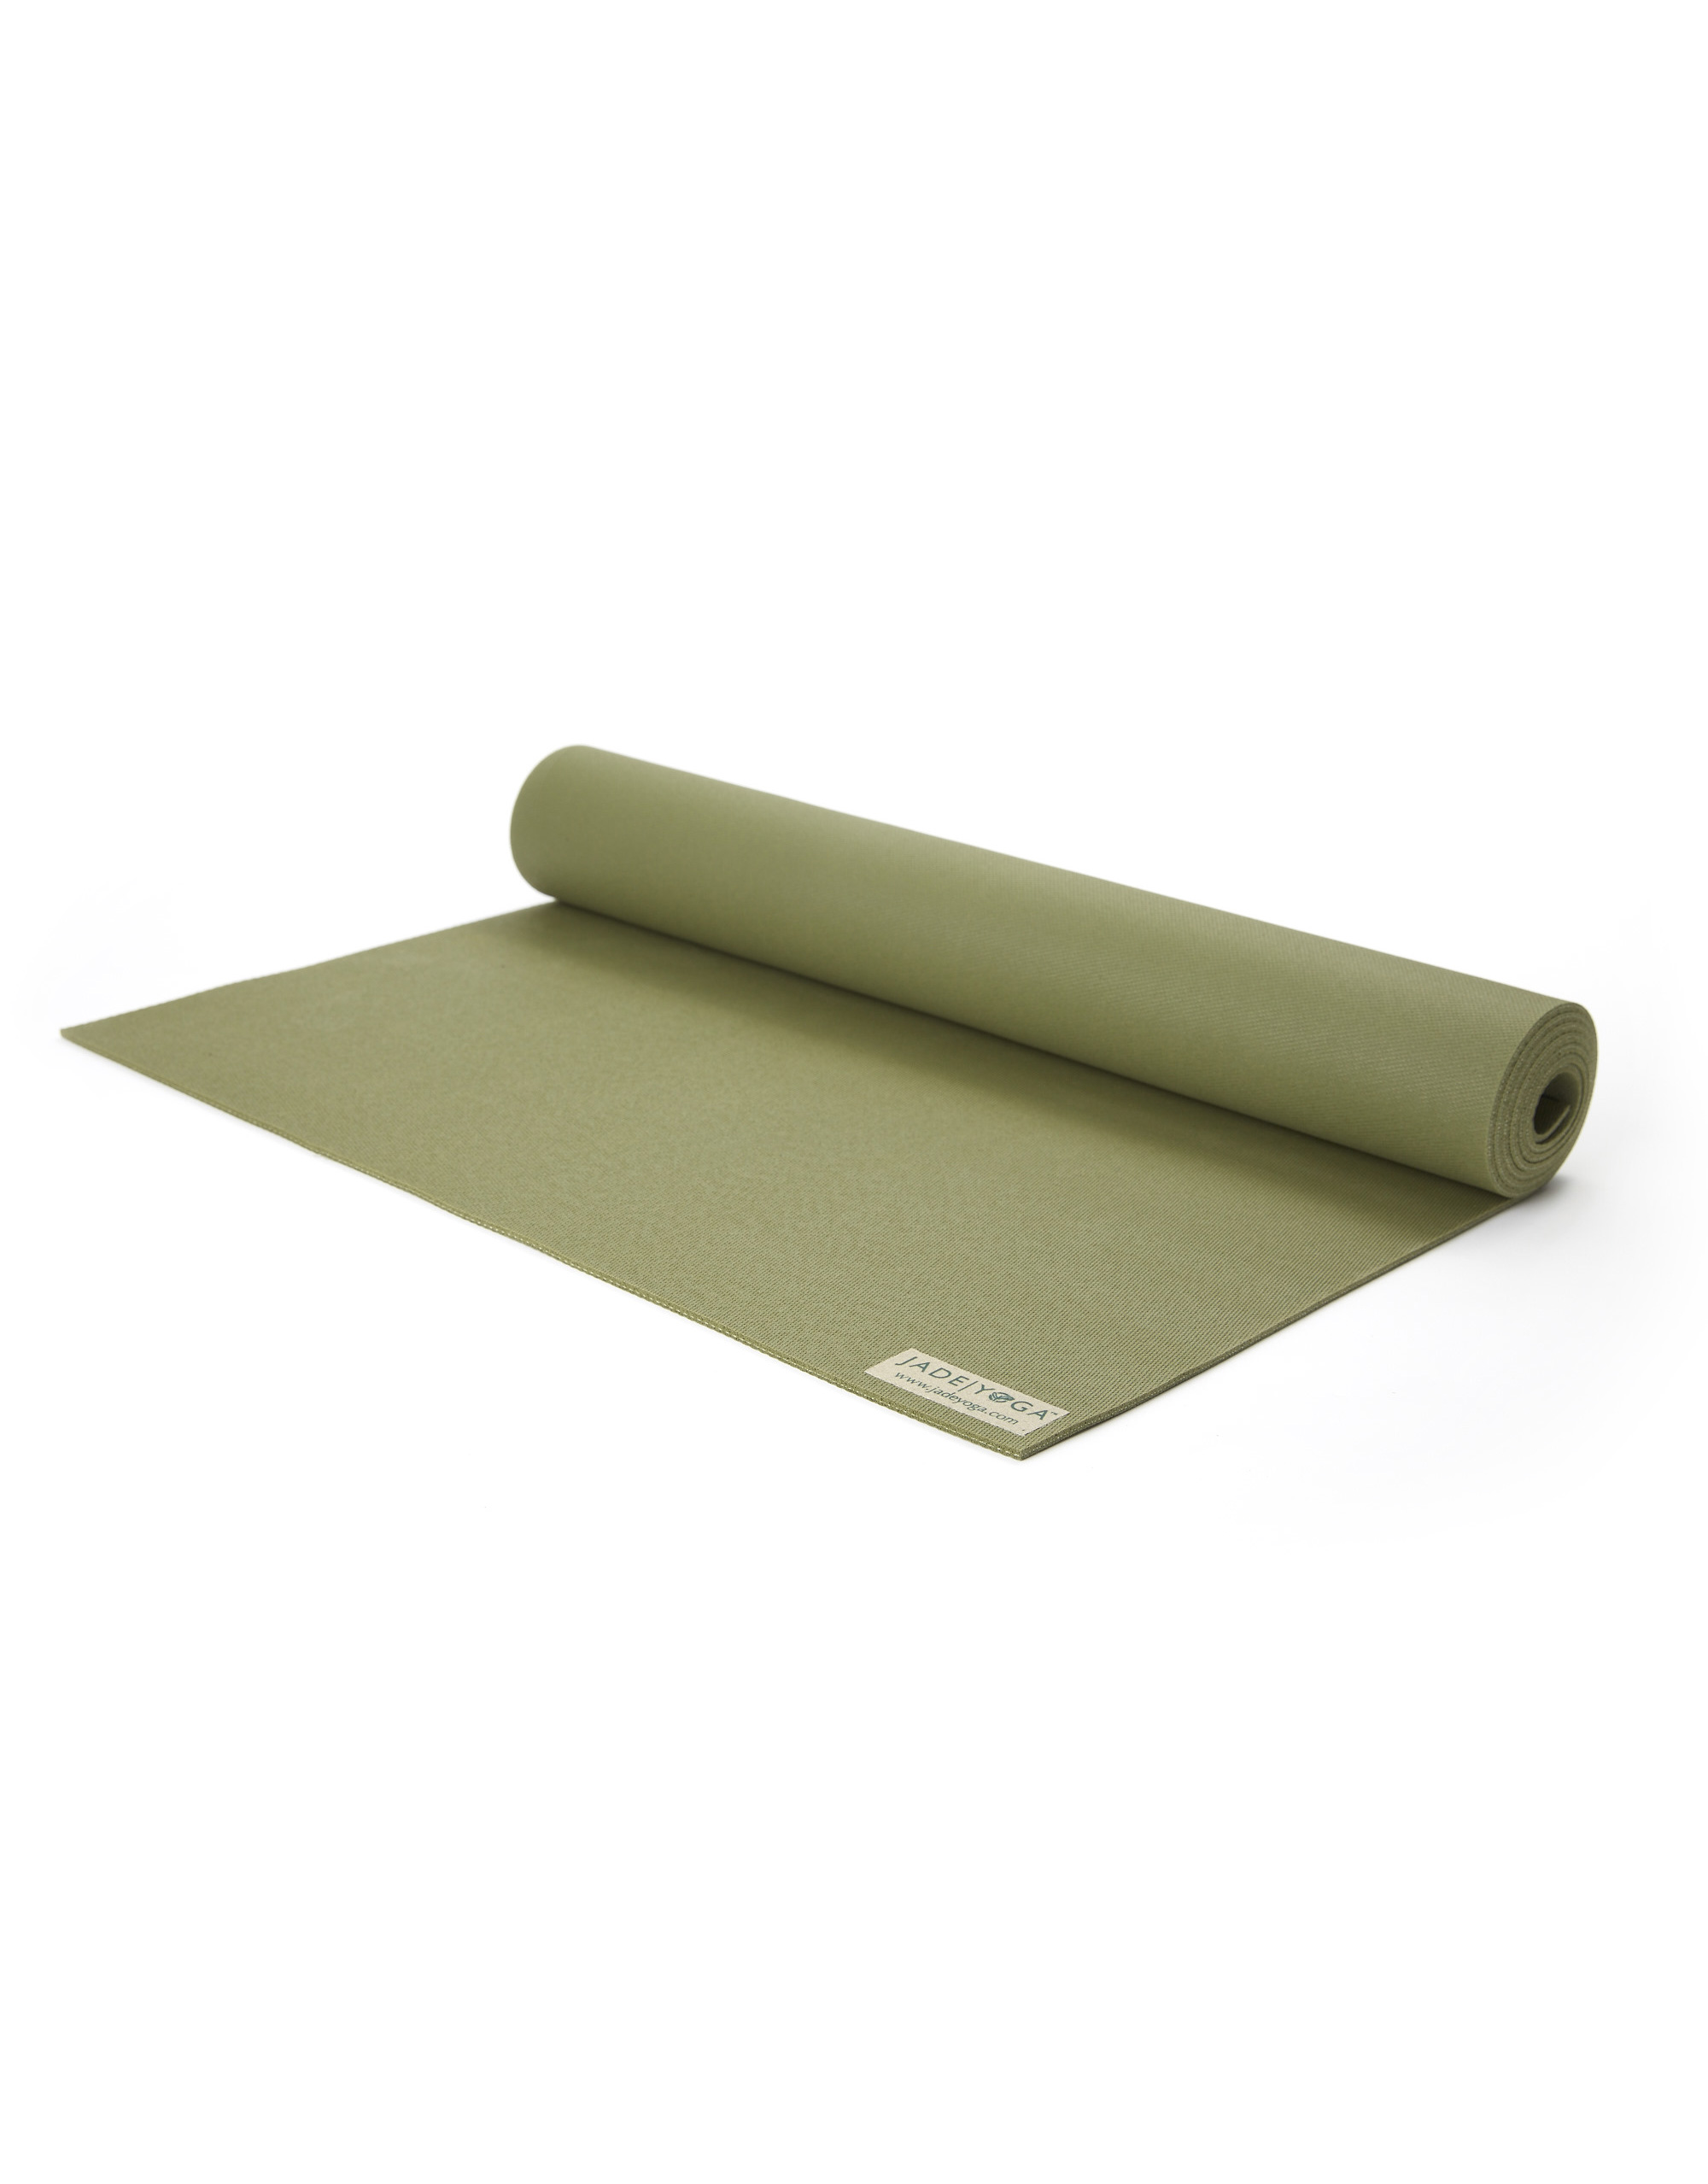 green cm inflating dirtbag sleeping alpkit mat camping self products thick web